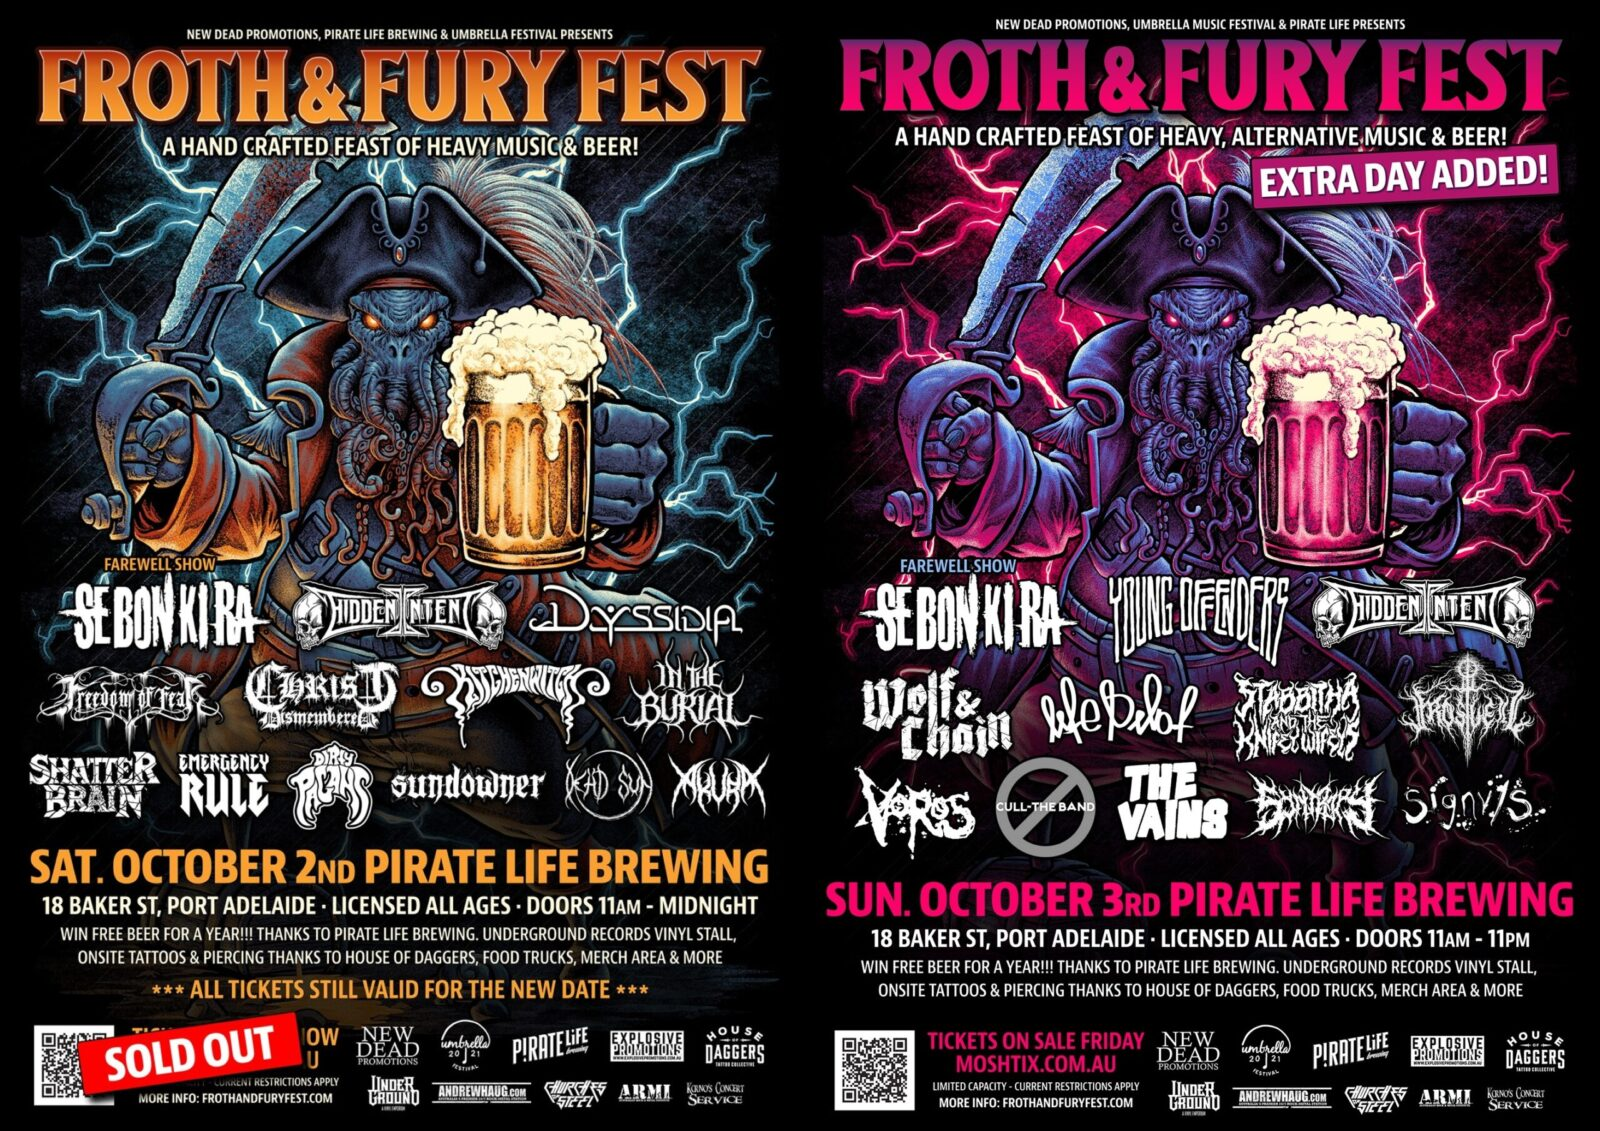 FROTH AND FURY FEST – extra day added.